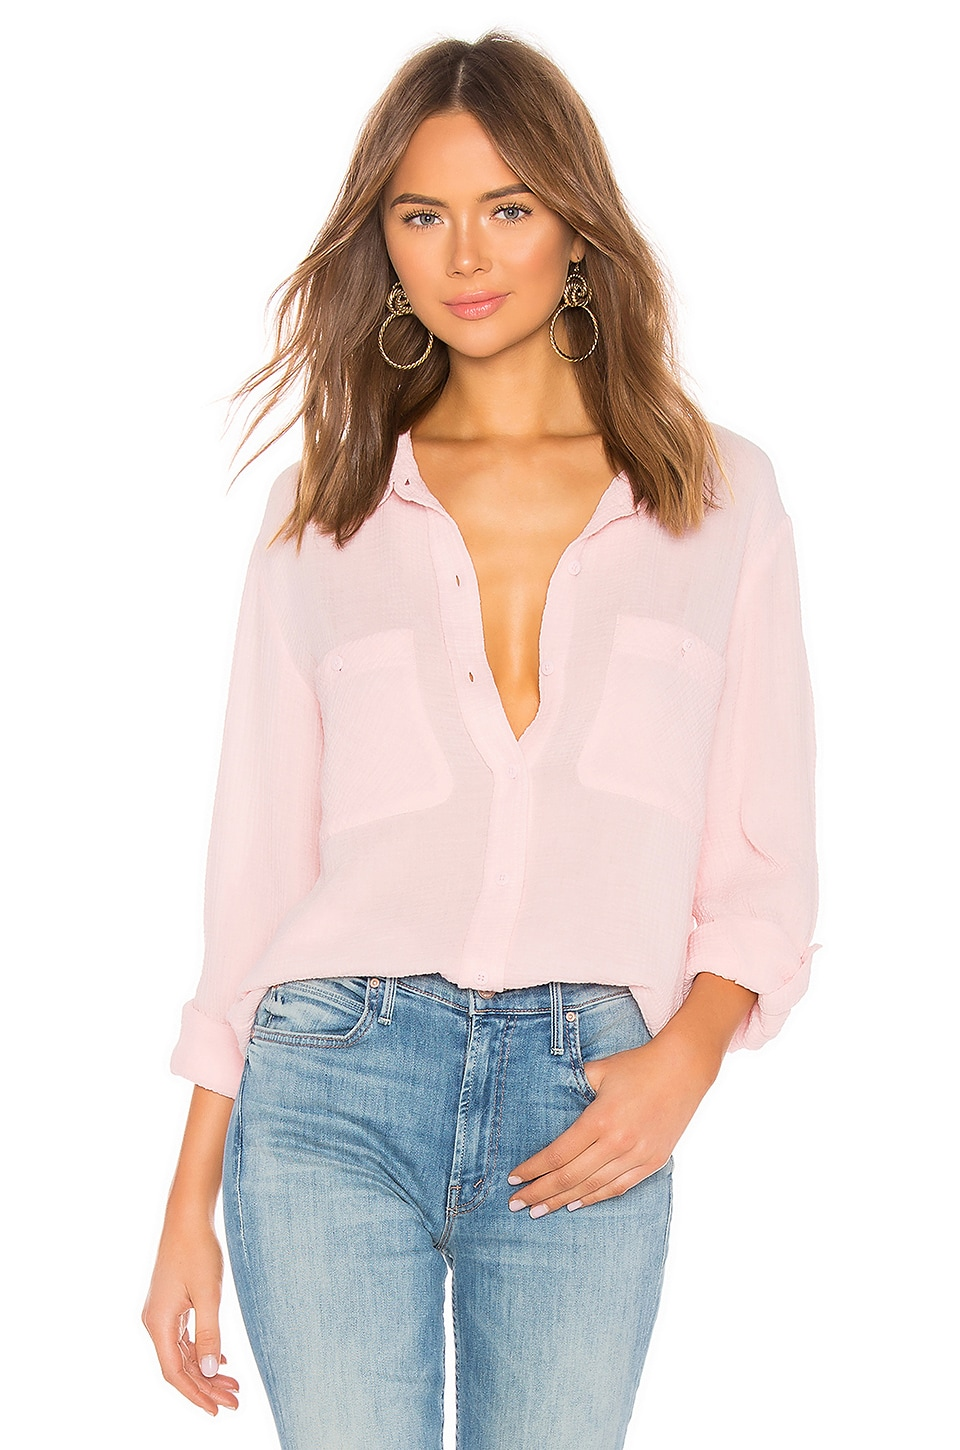 Sanctuary T-shirts SANCTUARY STEADY BOYFRIEND SHIRT IN PINK.